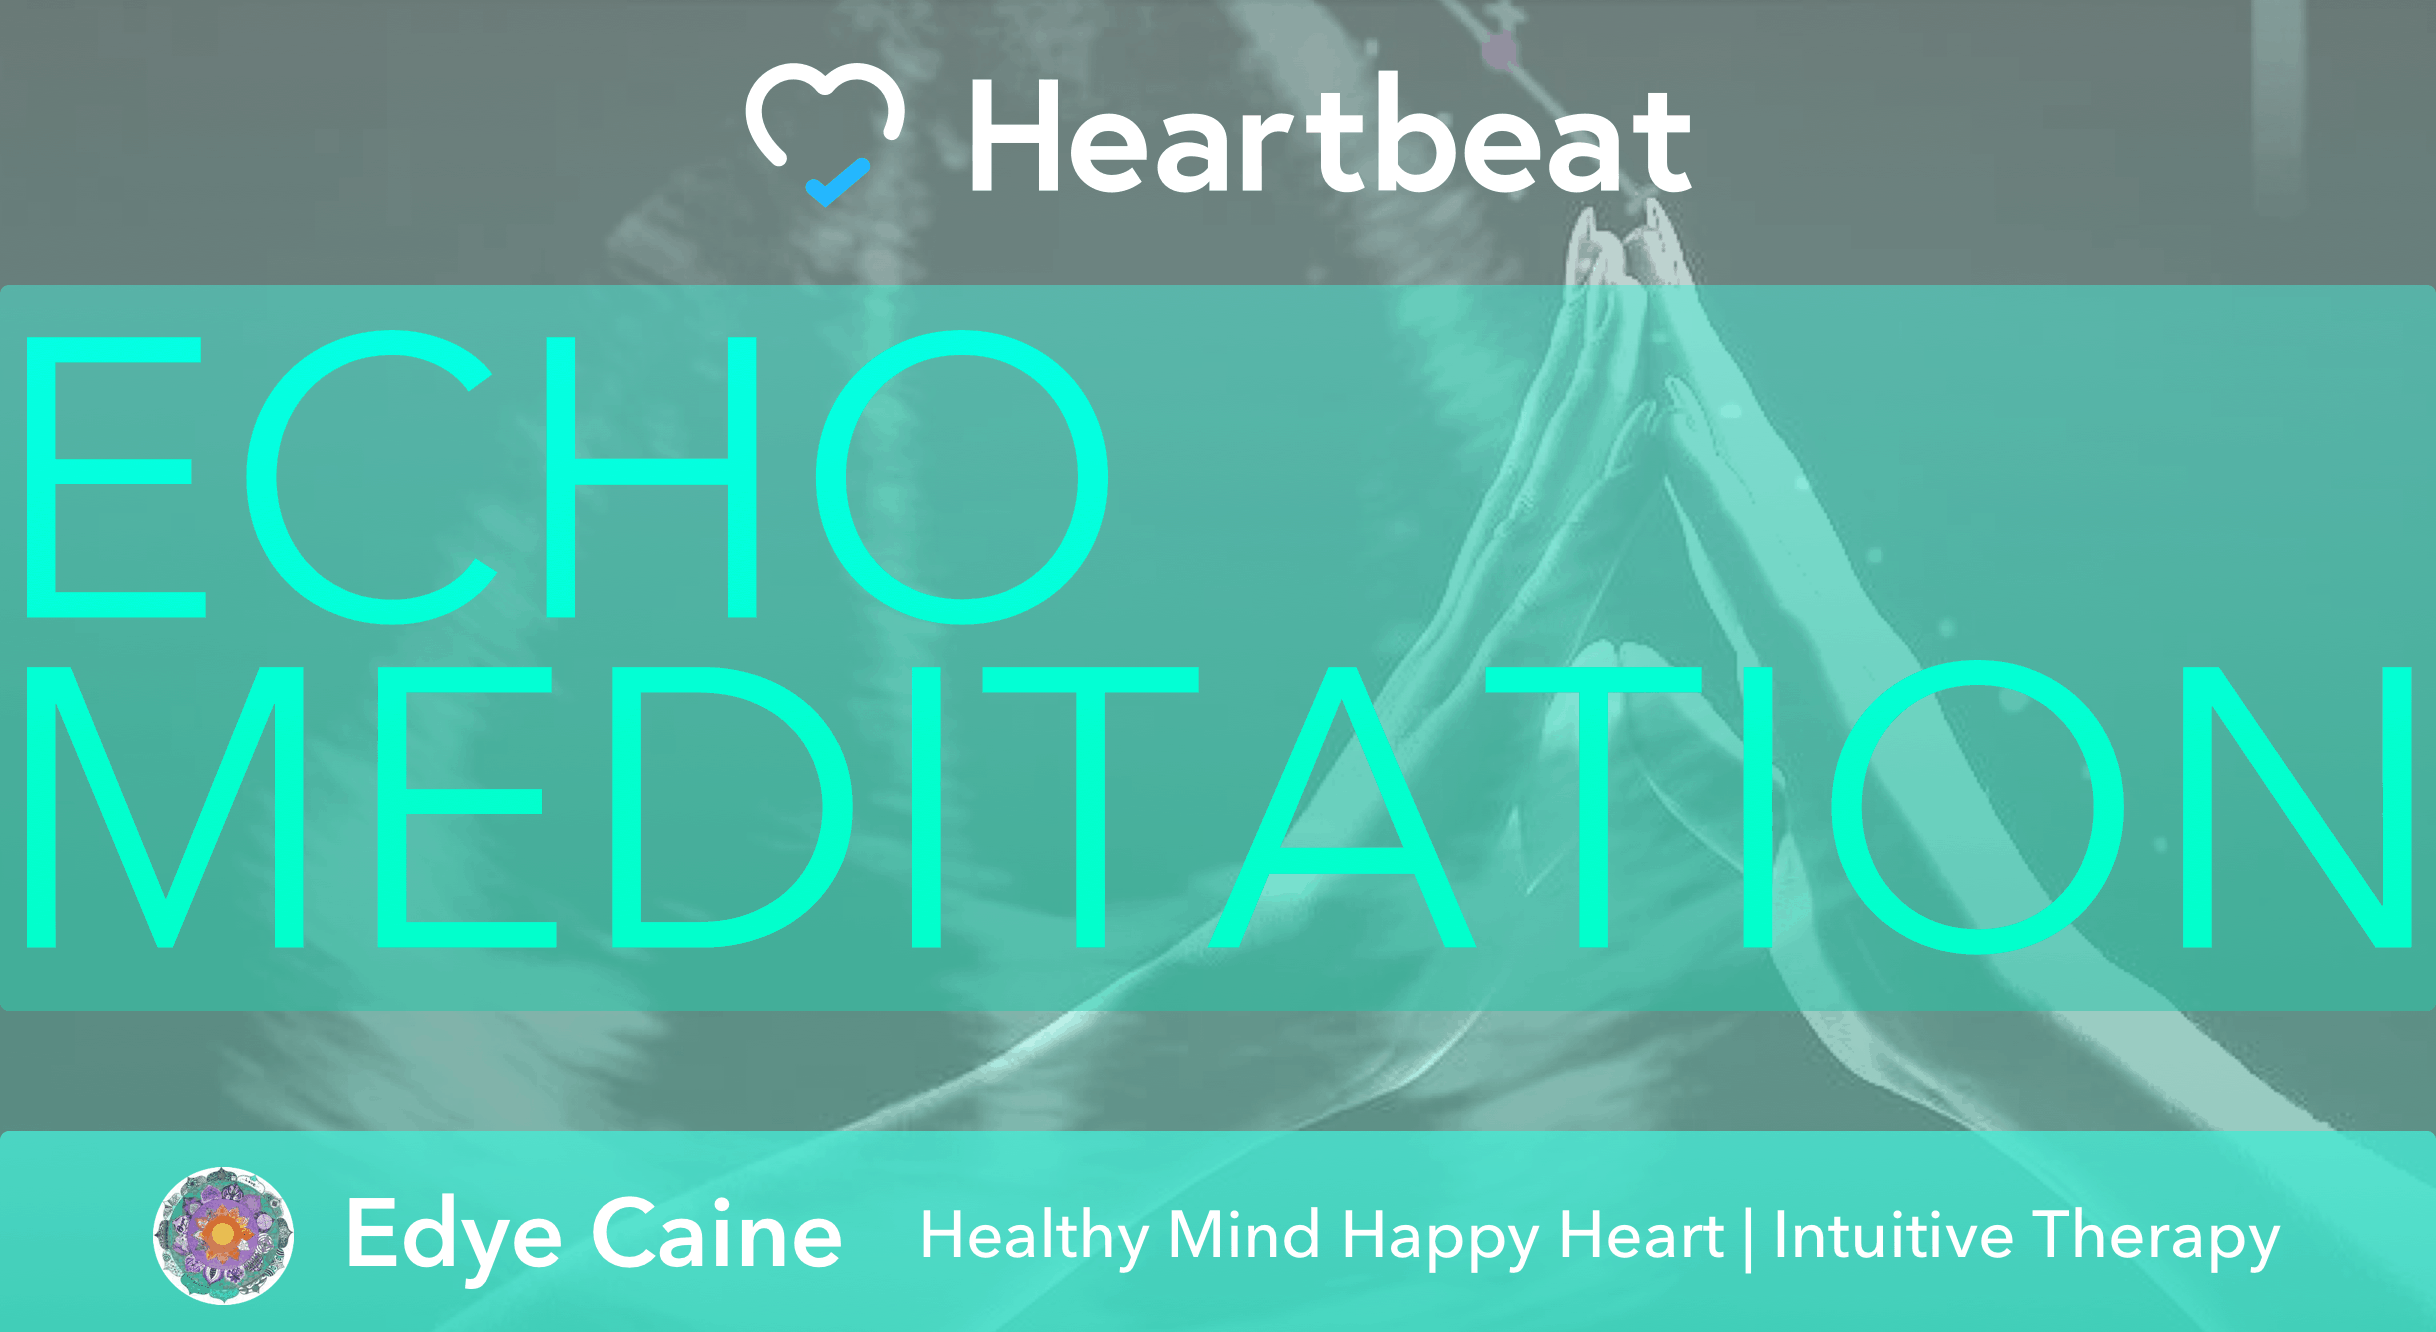 Heartbeat and Healthy Minds Happy Hearts are proud to present Echo Meditation. It's is a new exper